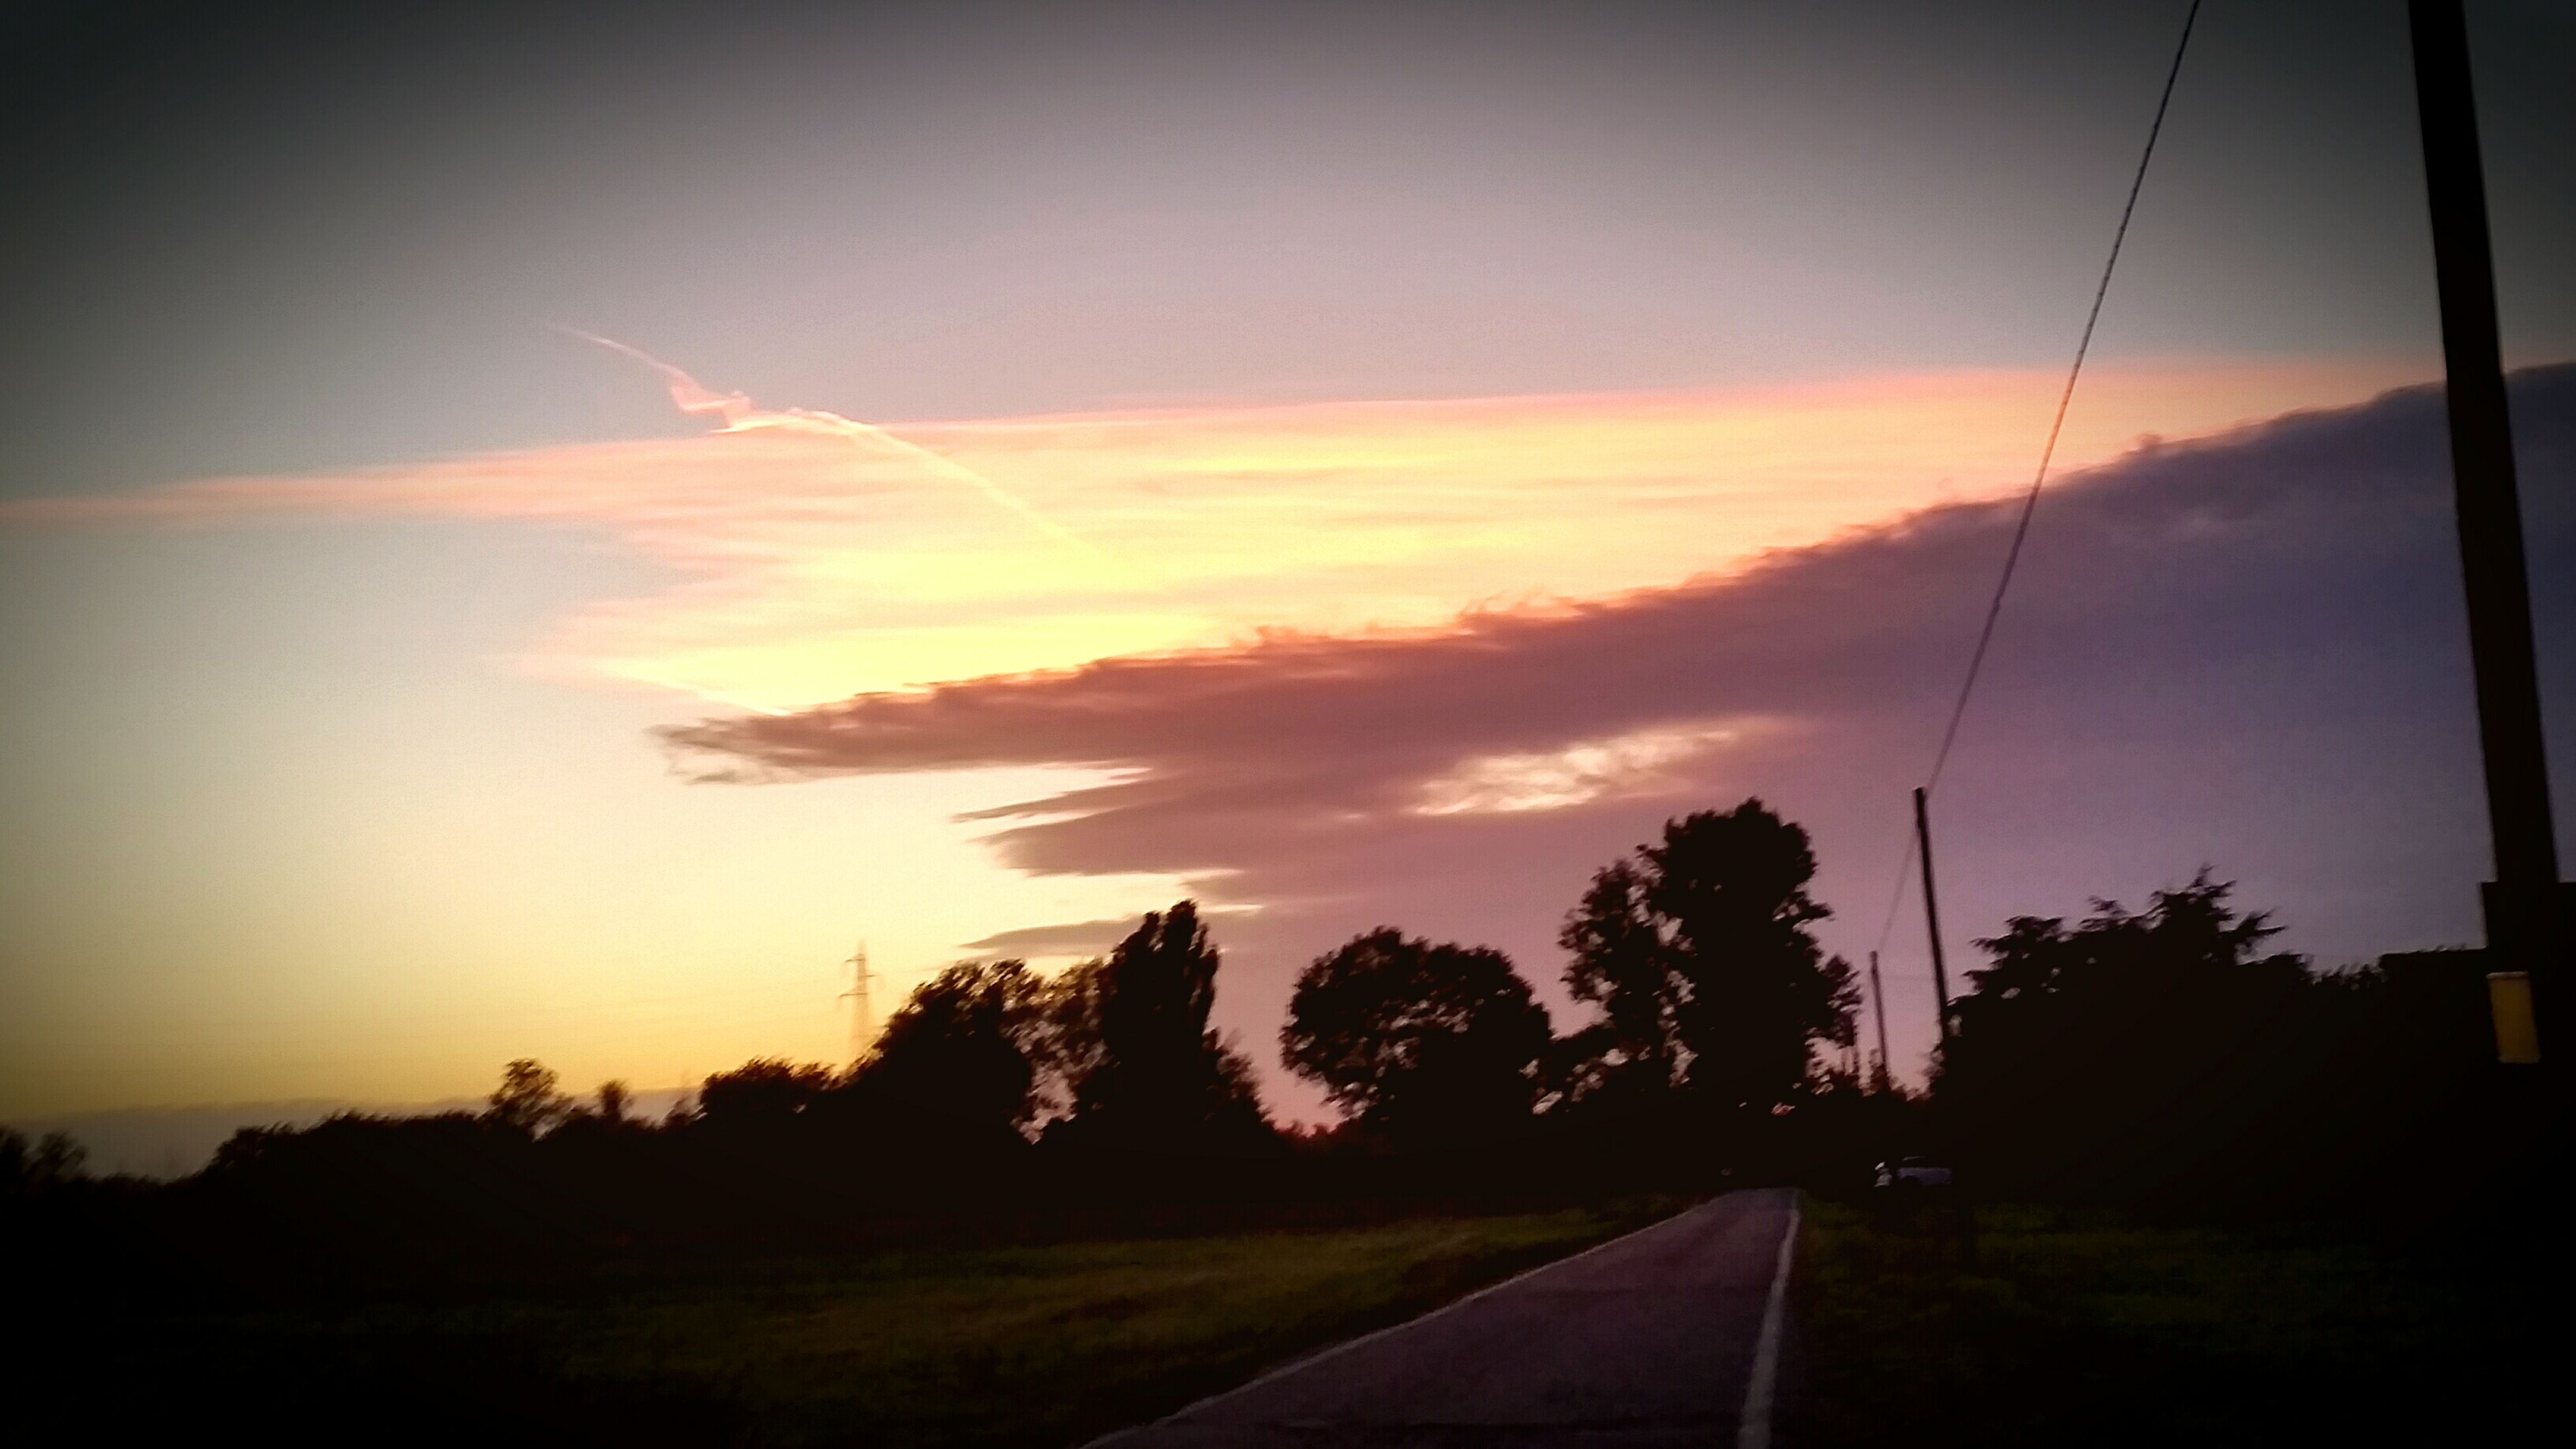 sunset, sky, tree, silhouette, road, transportation, tranquil scene, scenics, tranquility, beauty in nature, nature, landscape, cloud - sky, orange color, the way forward, cloud, idyllic, country road, no people, diminishing perspective